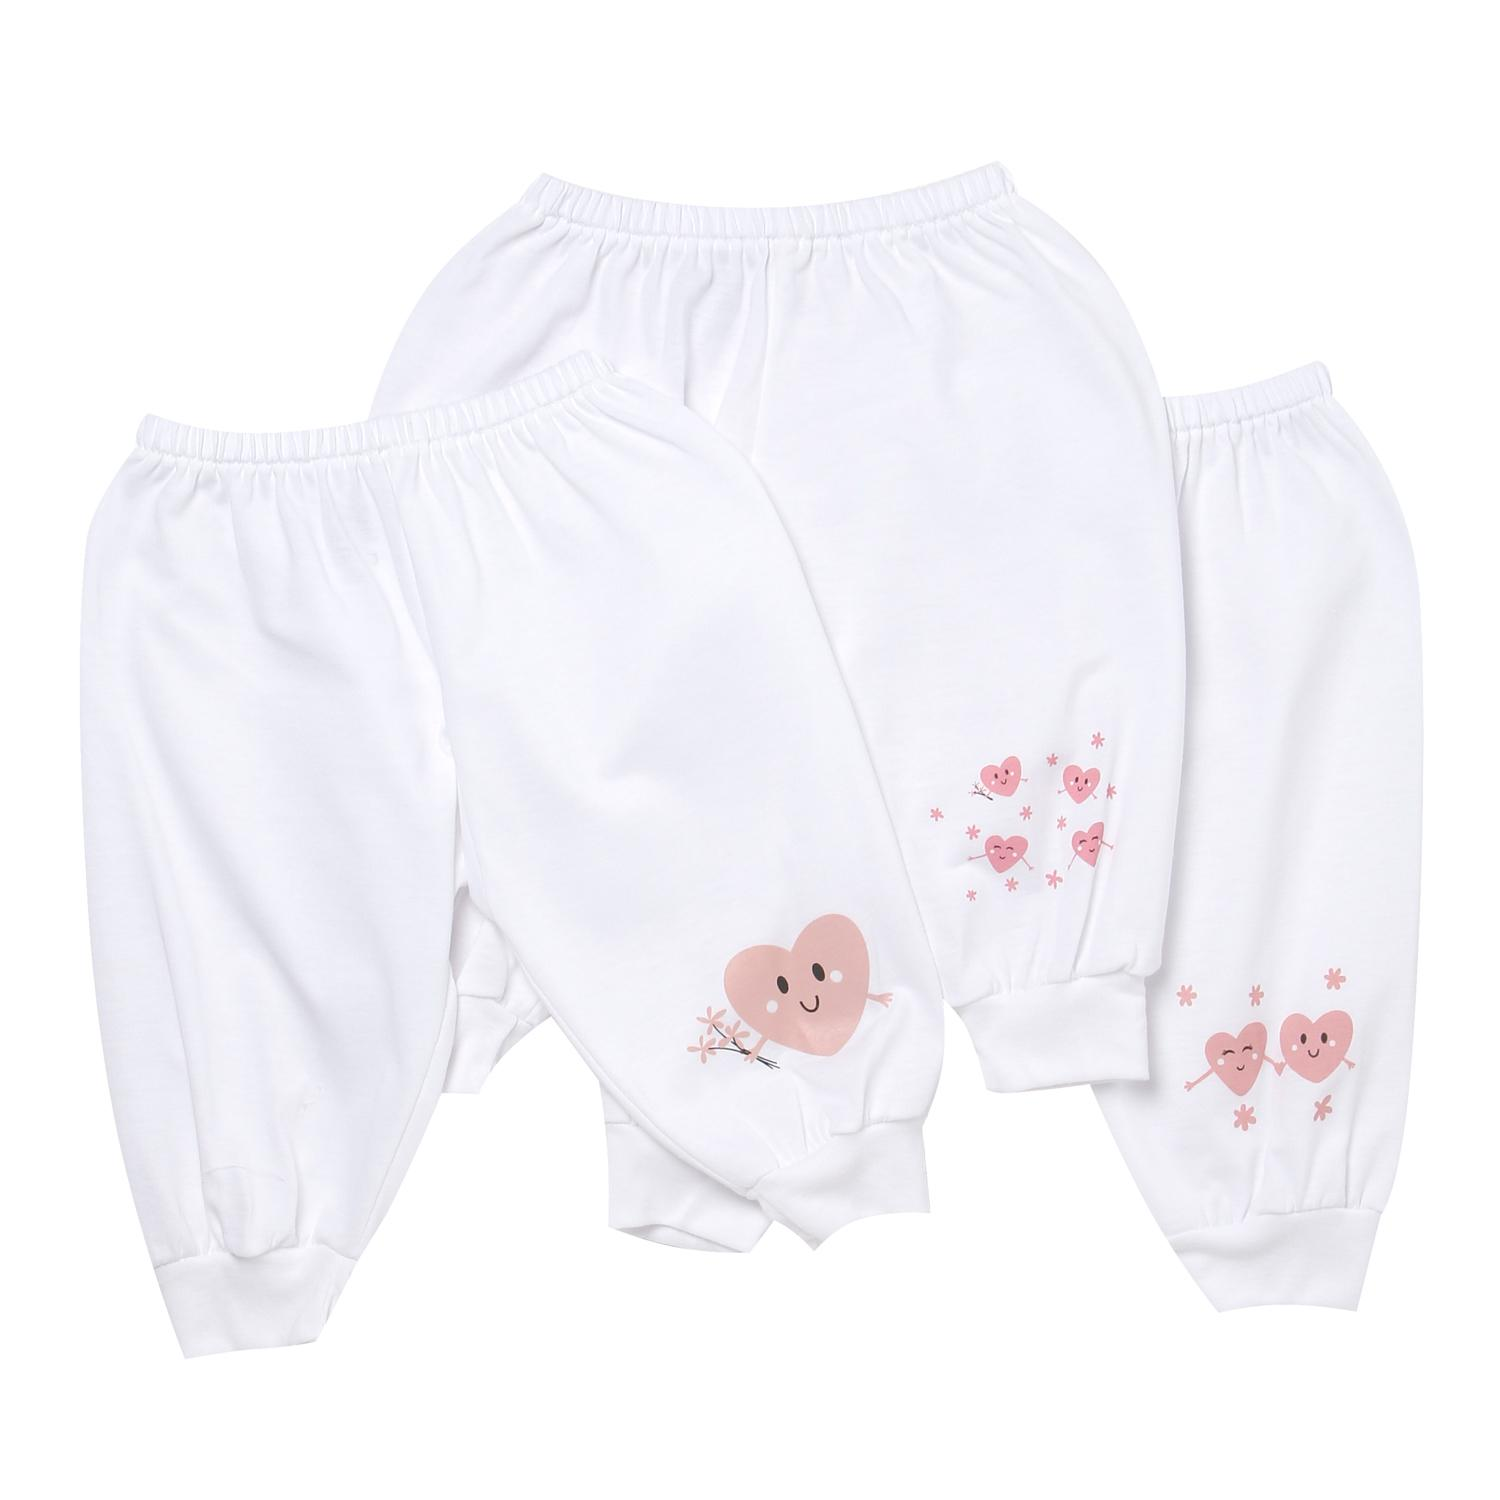 9ccbf8d2afae Baby Clothes for sale - Baby Clothing online brands